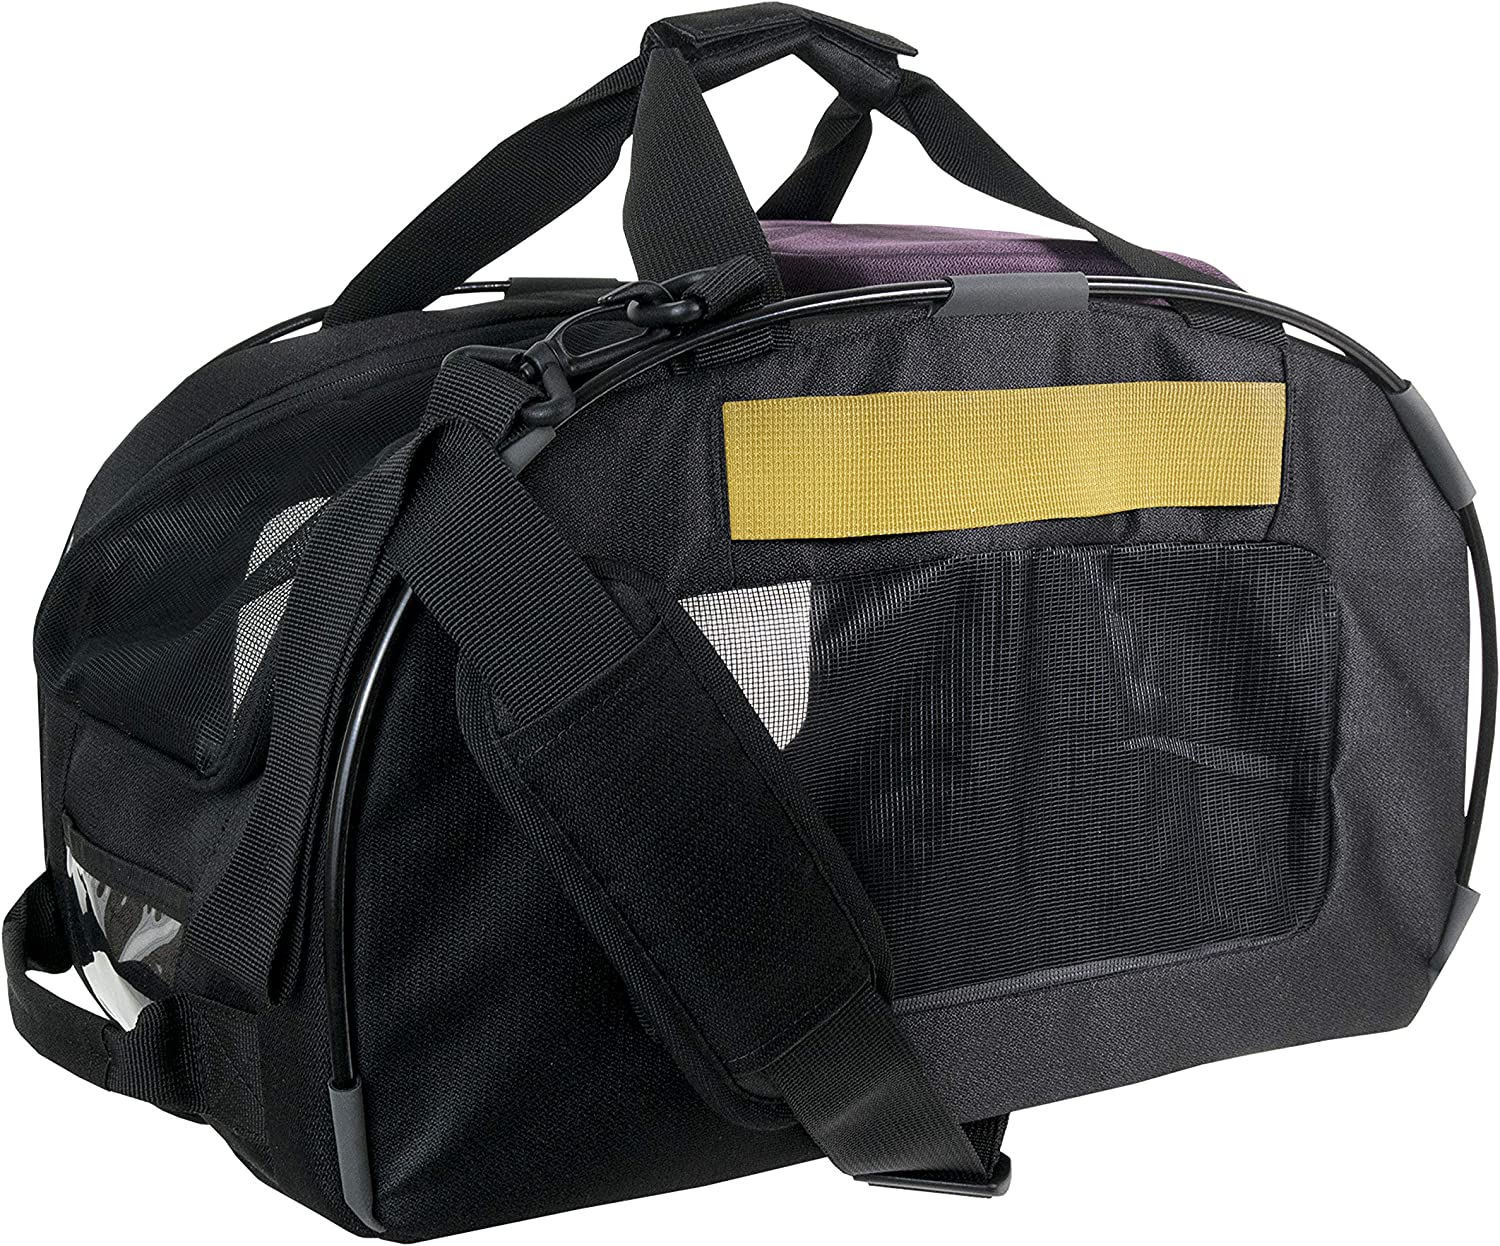 OllyDog Meridian Convertible Pet Carrier, 4-in-1 Pet Carrier, Can be Used in Car, Airport, or on a Trail, Air-Plane Travel On-Board Bag with Fleece Bolster Bed, for Small/Medium Cats and Dogs, Dahlia